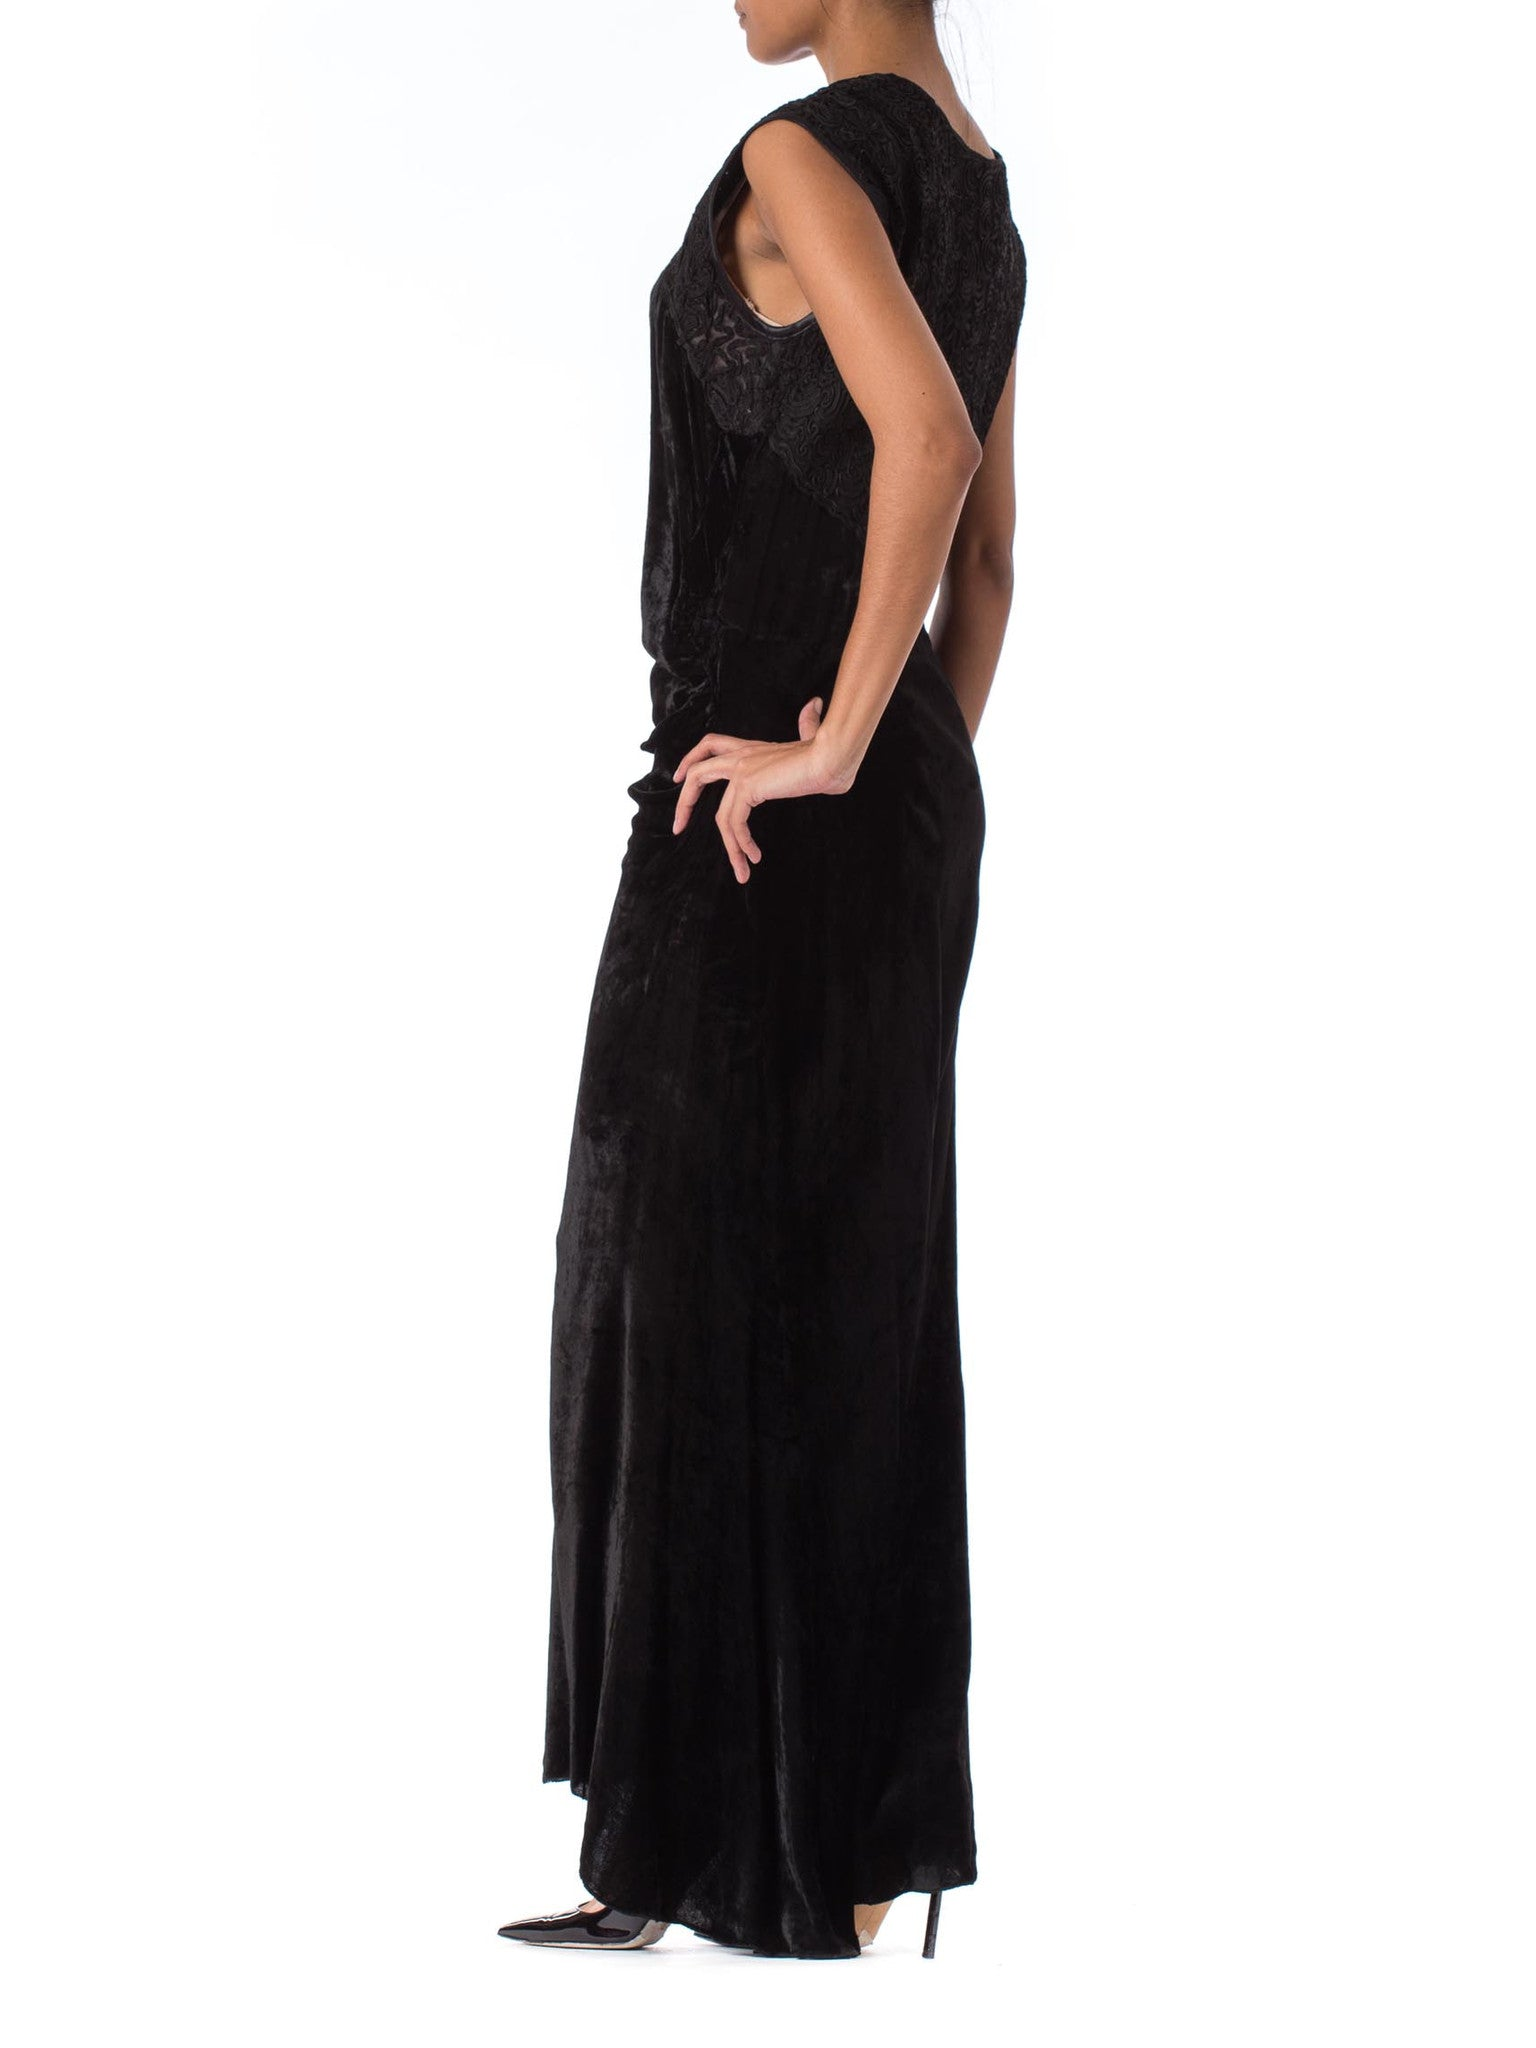 1930S Black Silk Velvet Bias-Cut Gown With Slight Train & Embroidered Lace Bodice